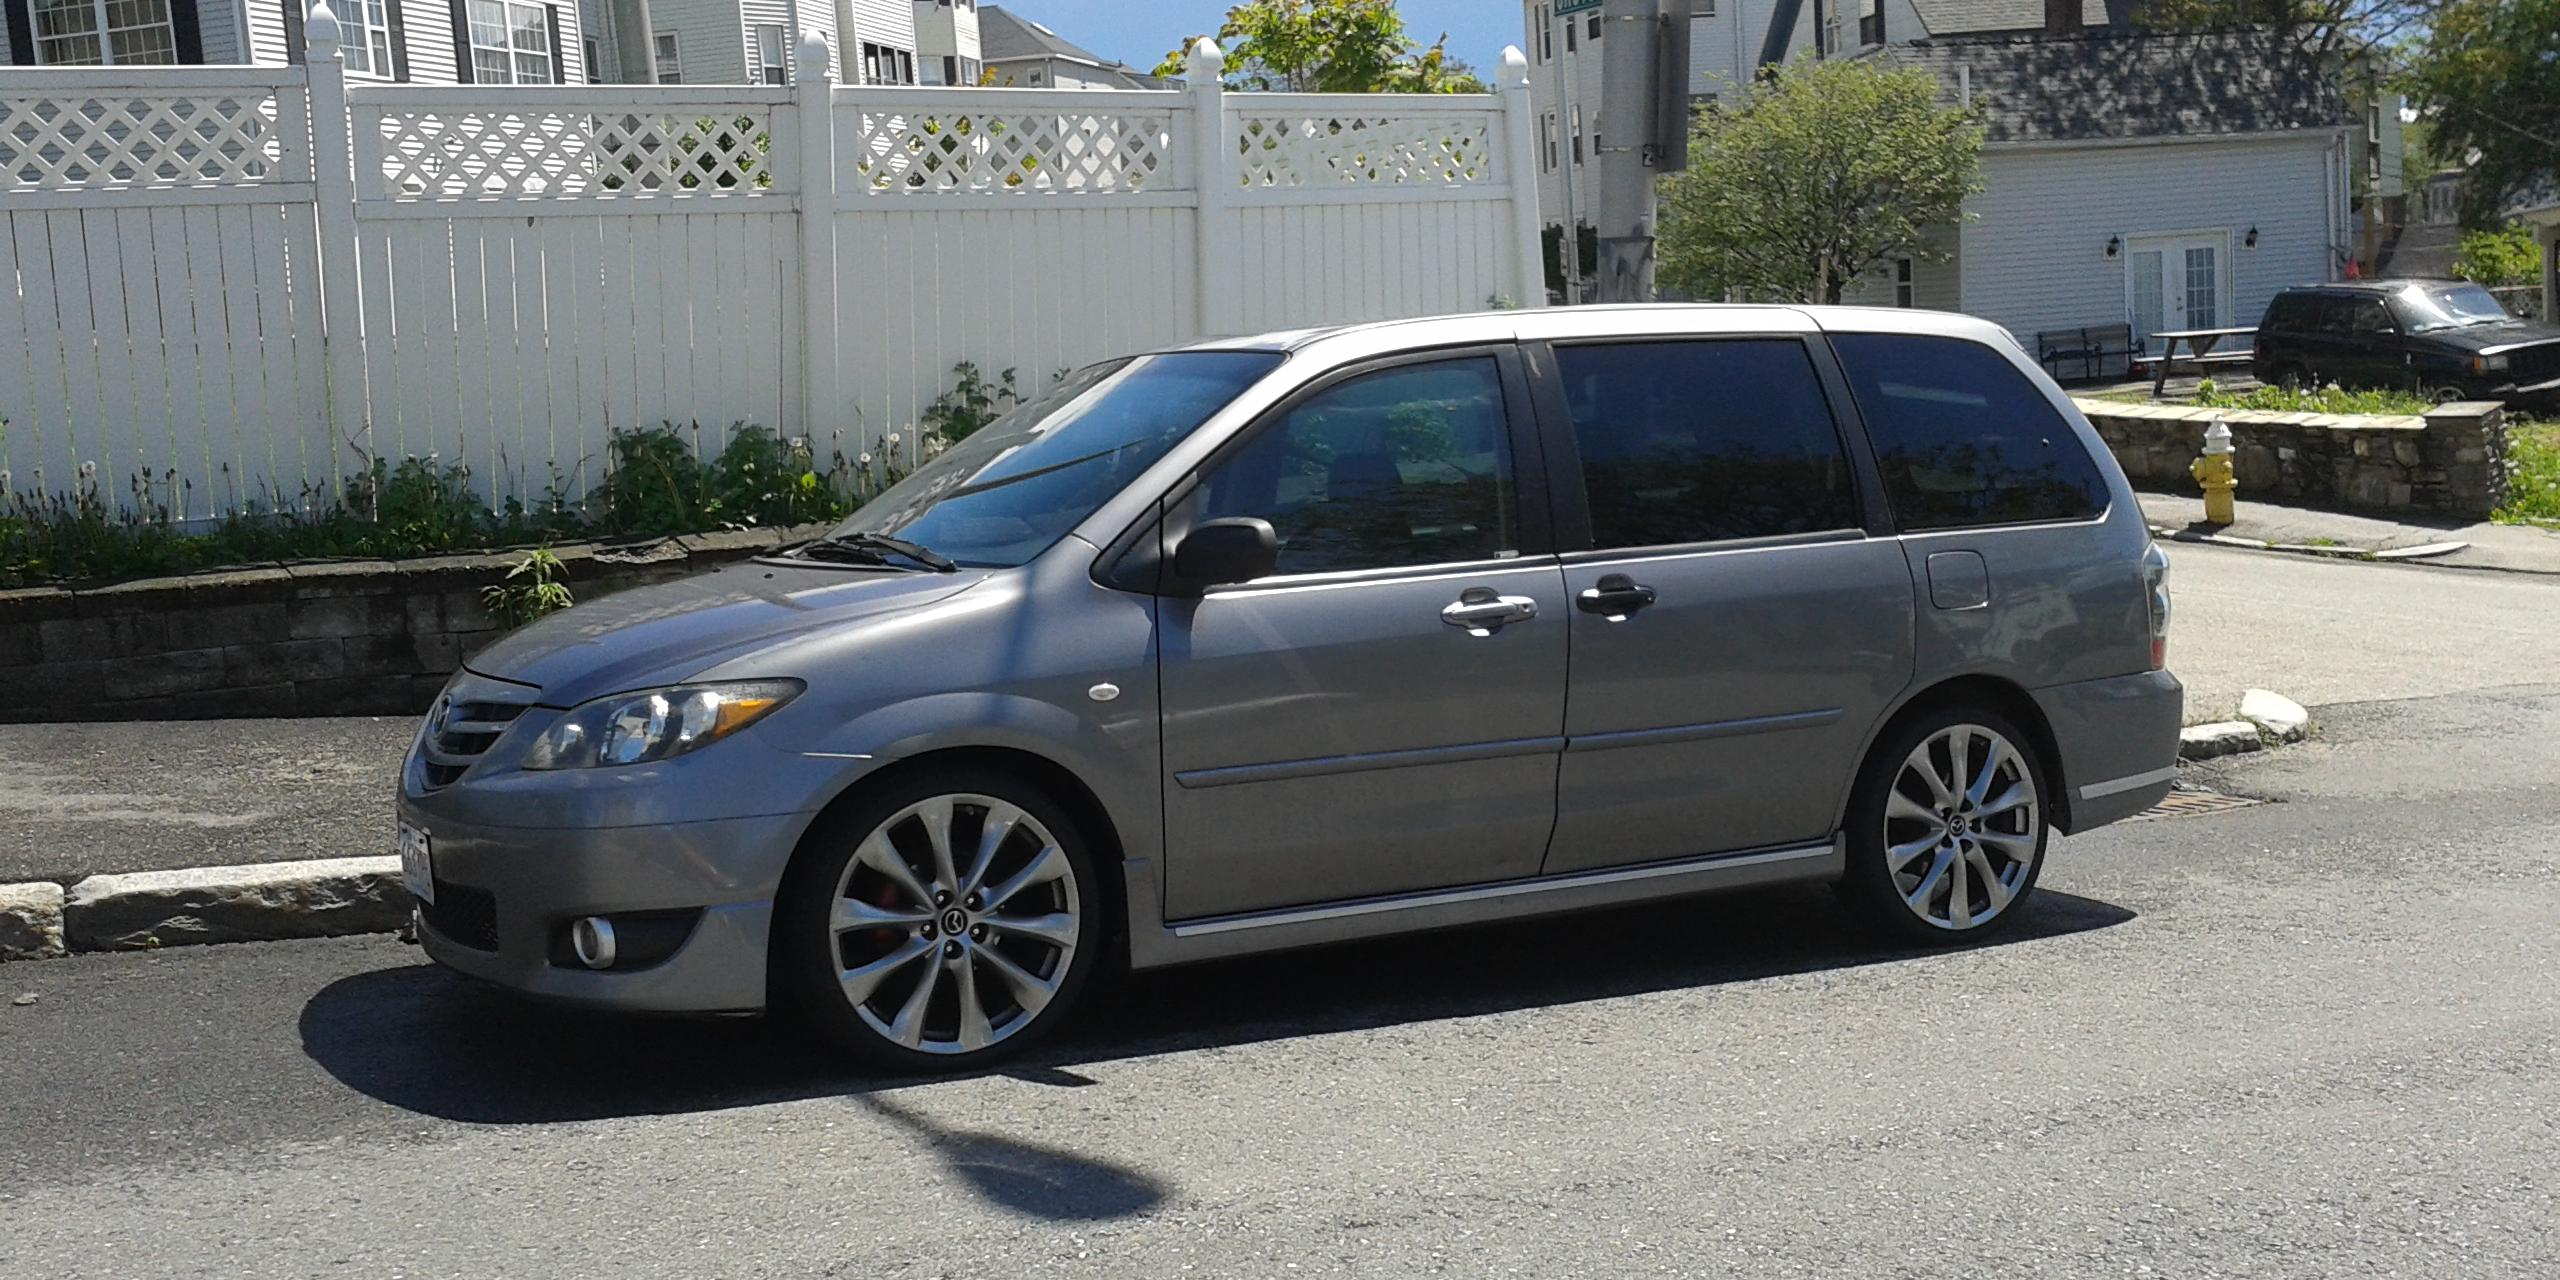 2015 mazda mpv view all 2015 mazda mpv at cardomain. Black Bedroom Furniture Sets. Home Design Ideas